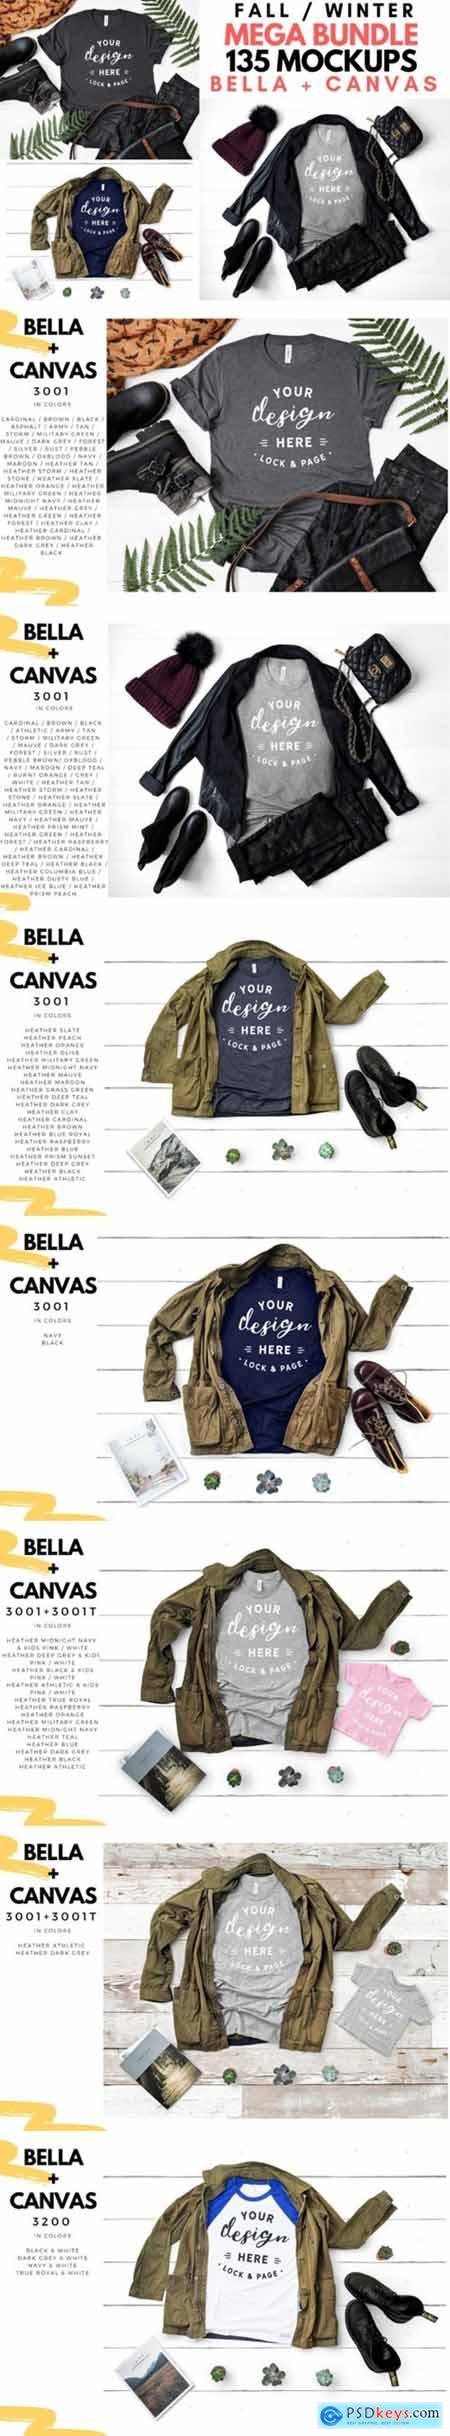 Bella Canvas Fall Winter T-Shirt Mockups